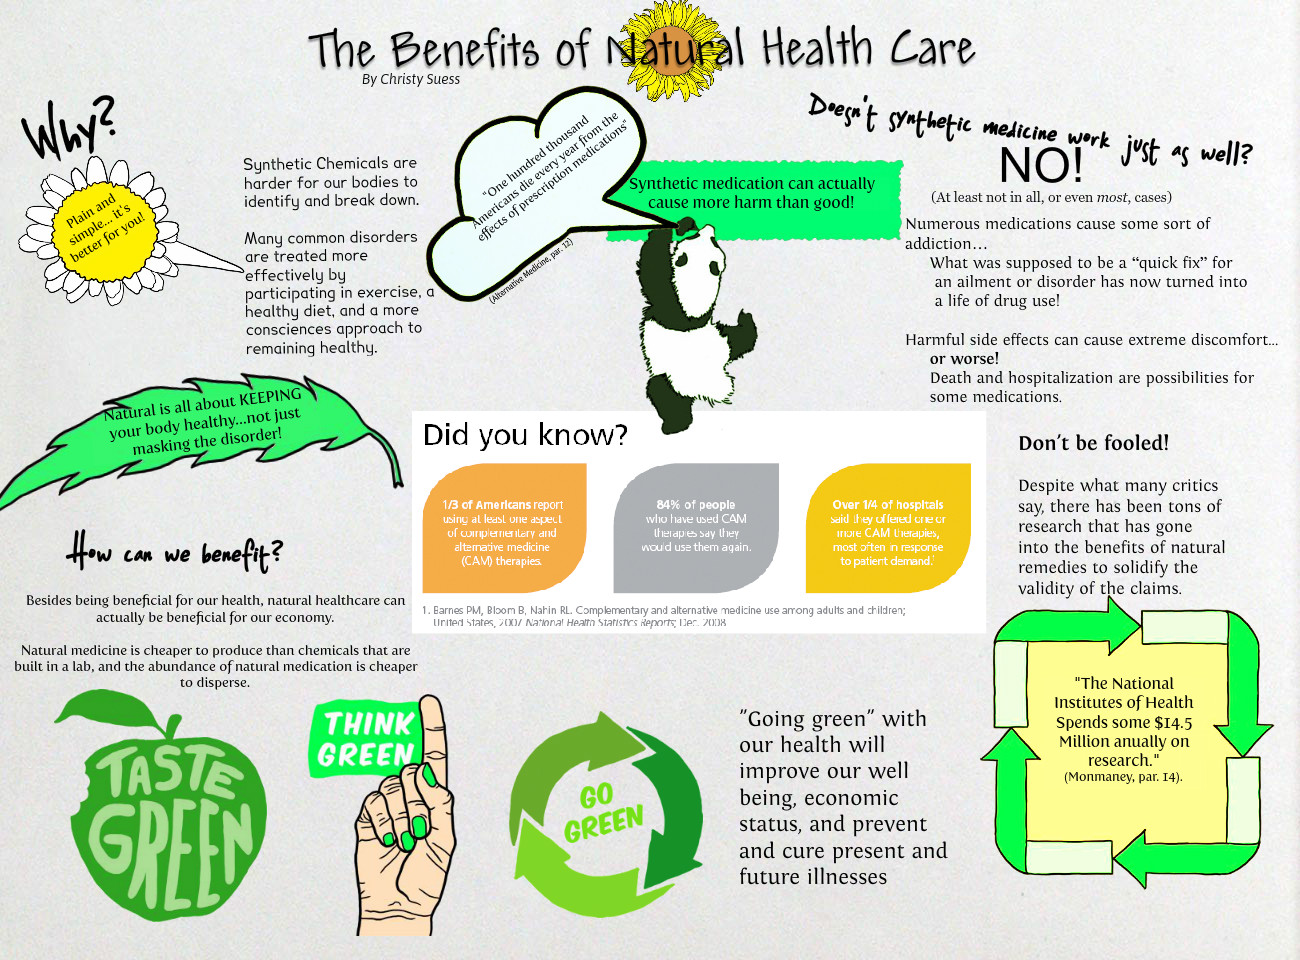 Benefits of Natural Healthcare